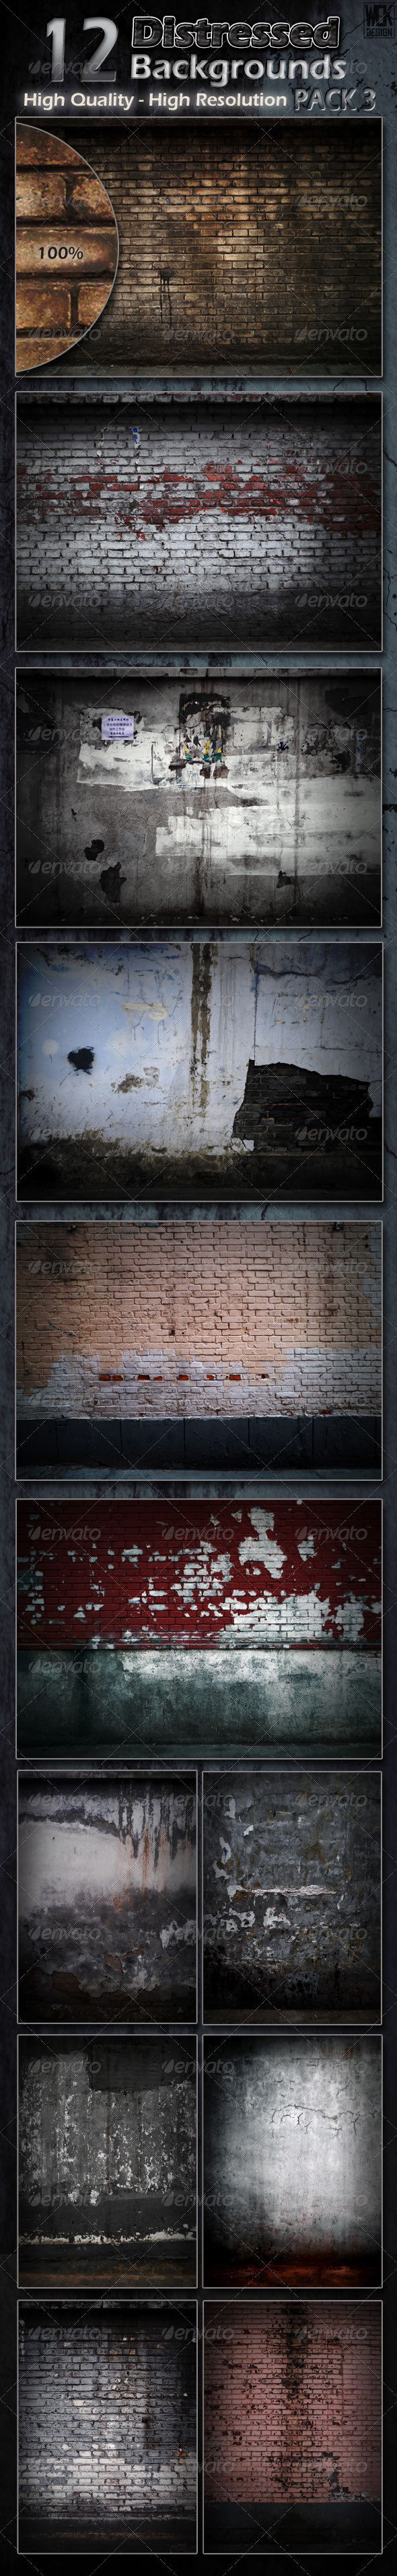 Distressed Background Textures Pack 3 - Backgrounds Graphics